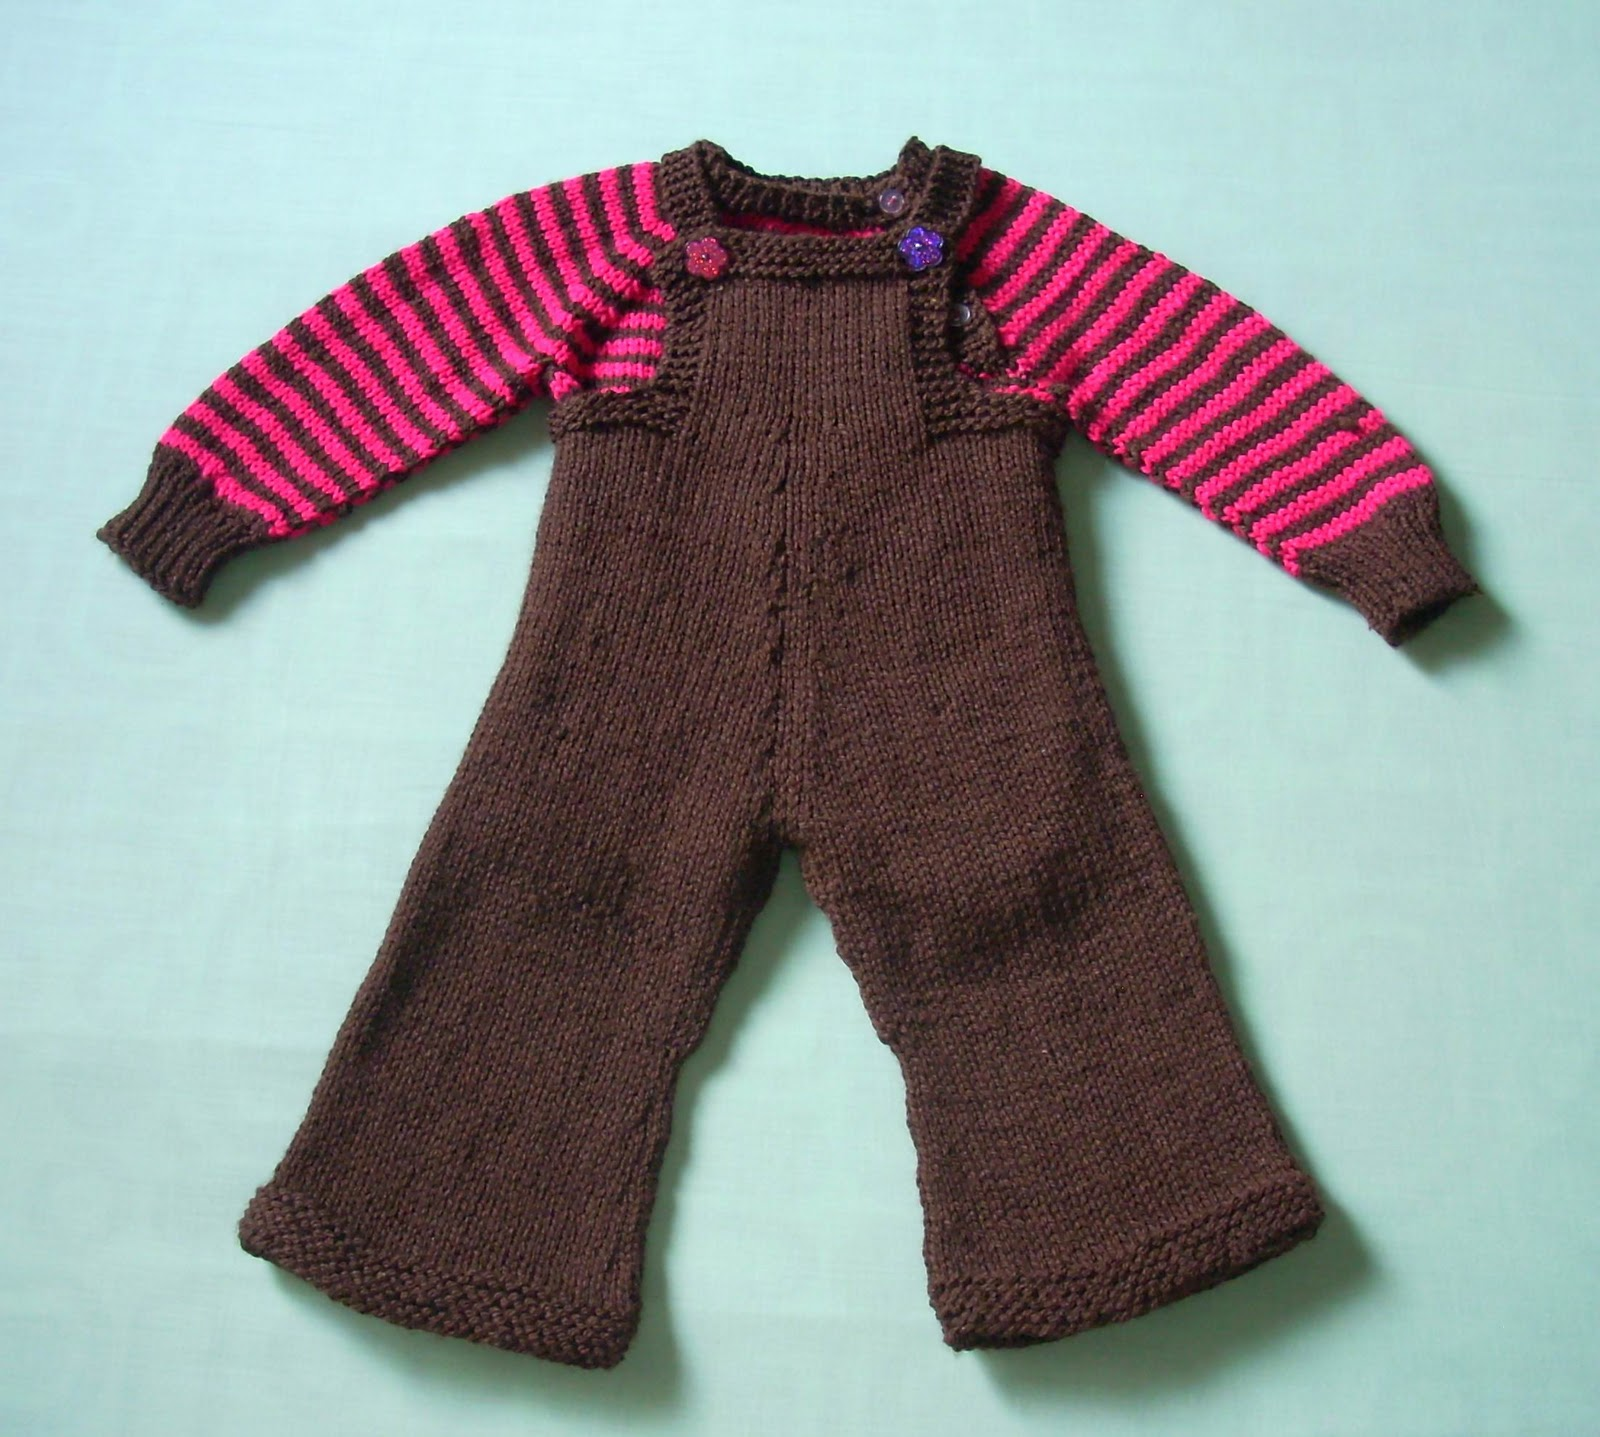 Knitting Pattern For Toddler Overalls : Umme Yusuf: Baby Overalls and Sweater